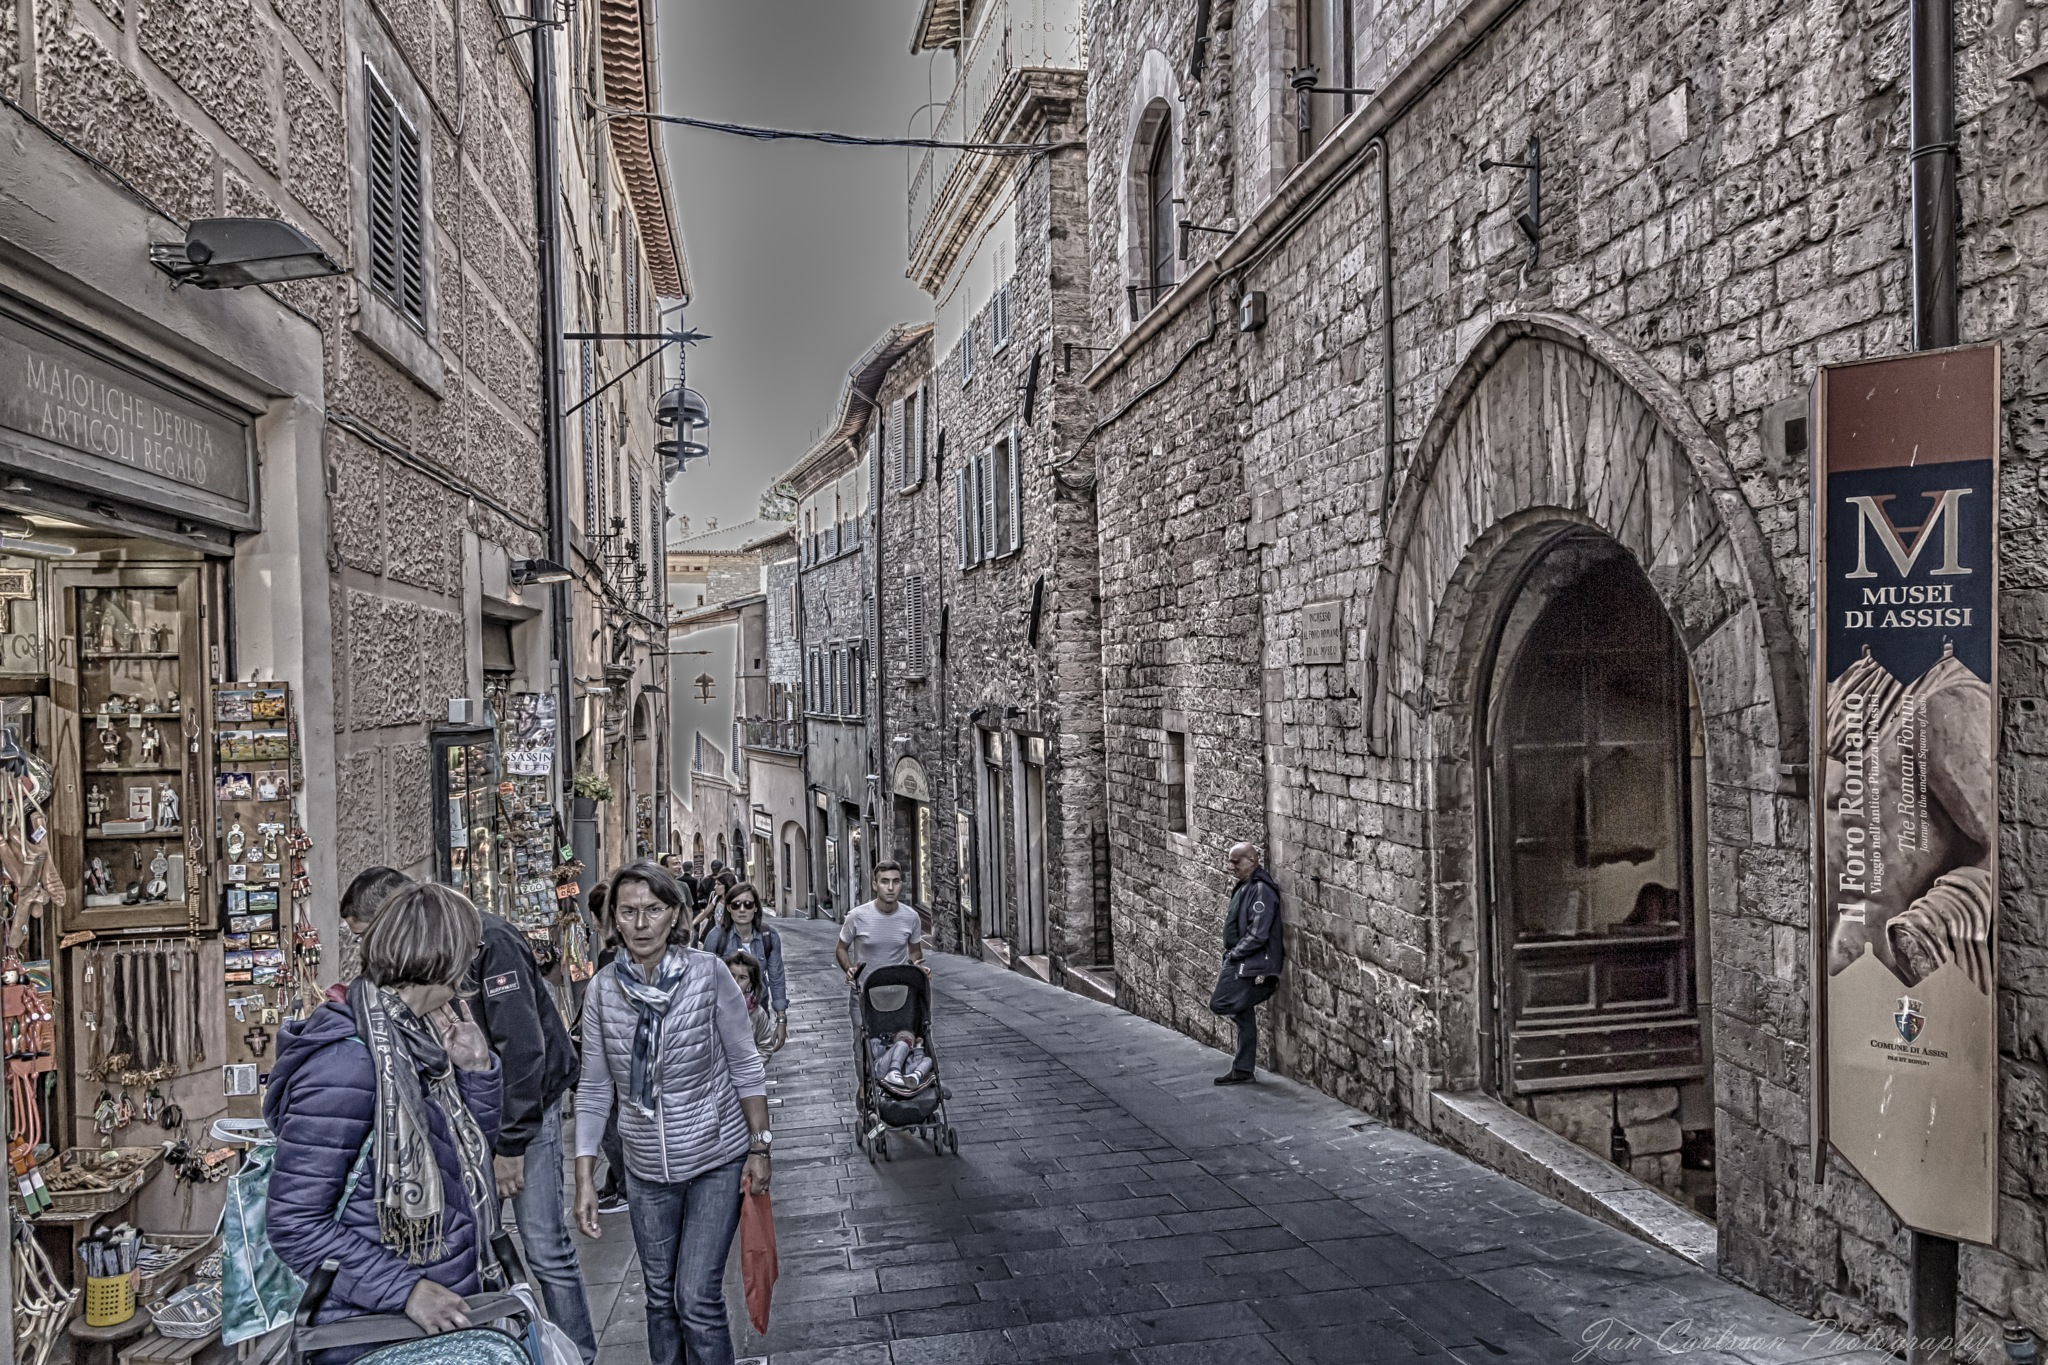 The Streets of Assisi by carljan w carlsson